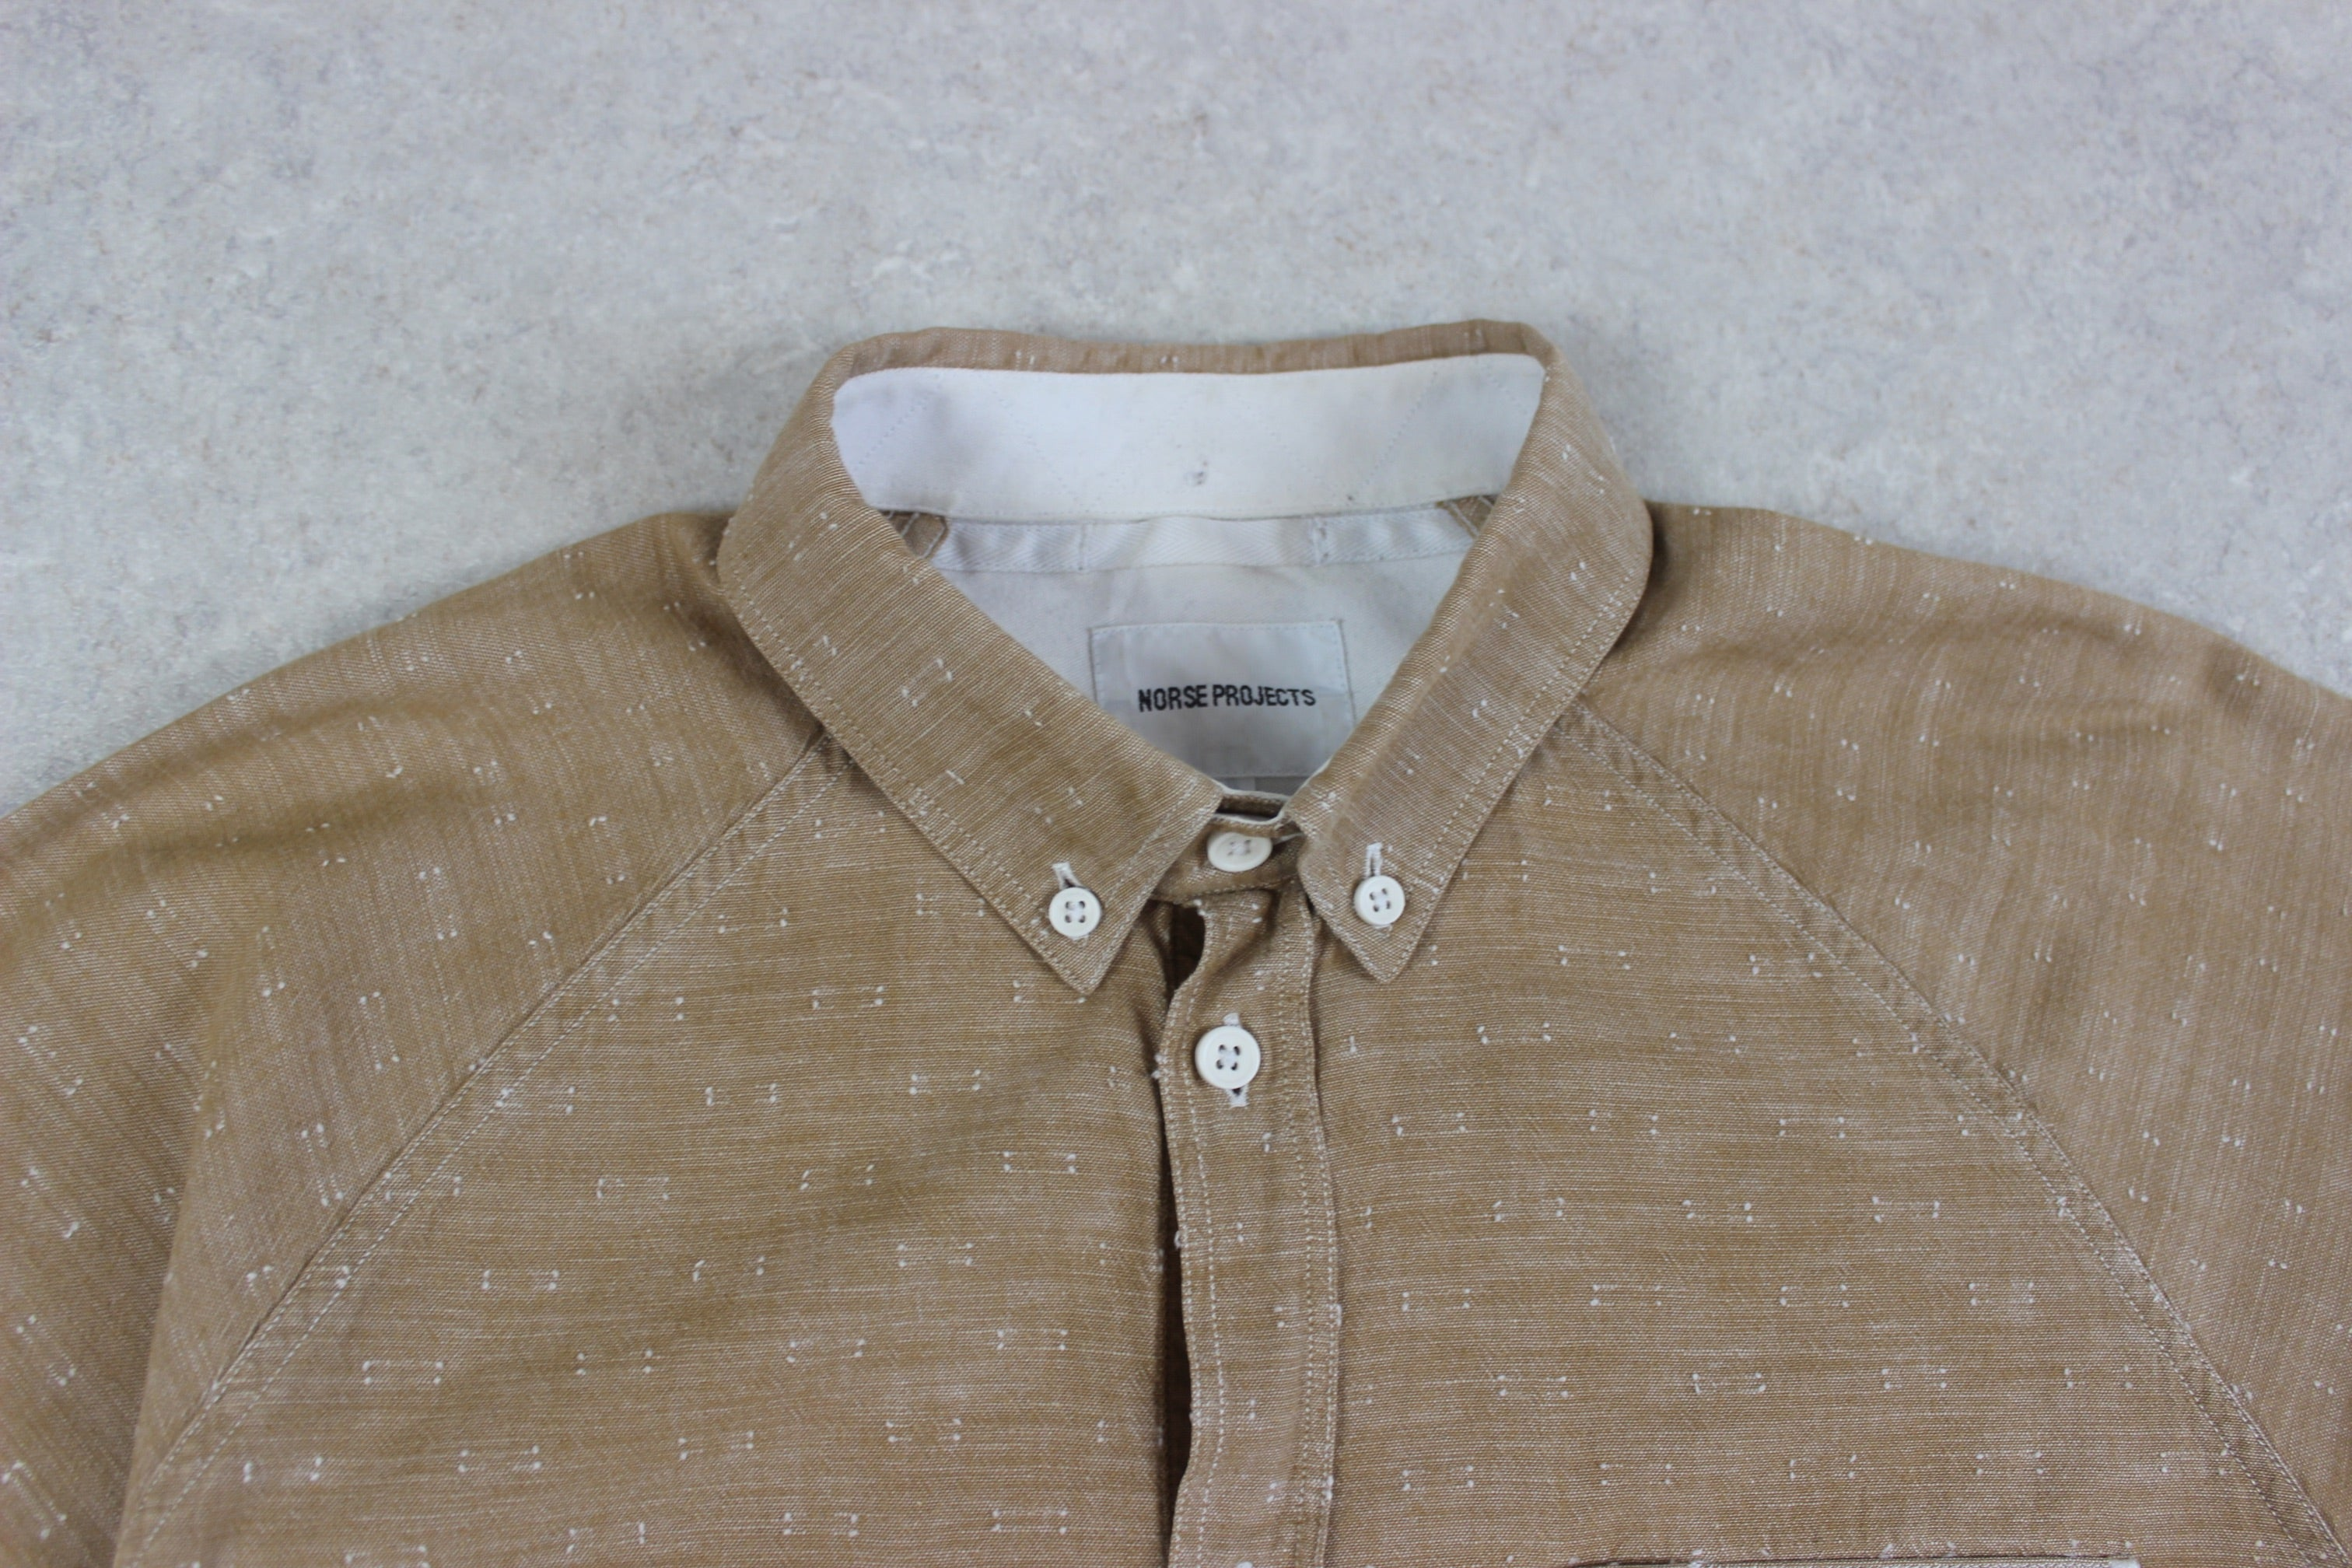 Norse Projects - Shirt - Beige - Medium